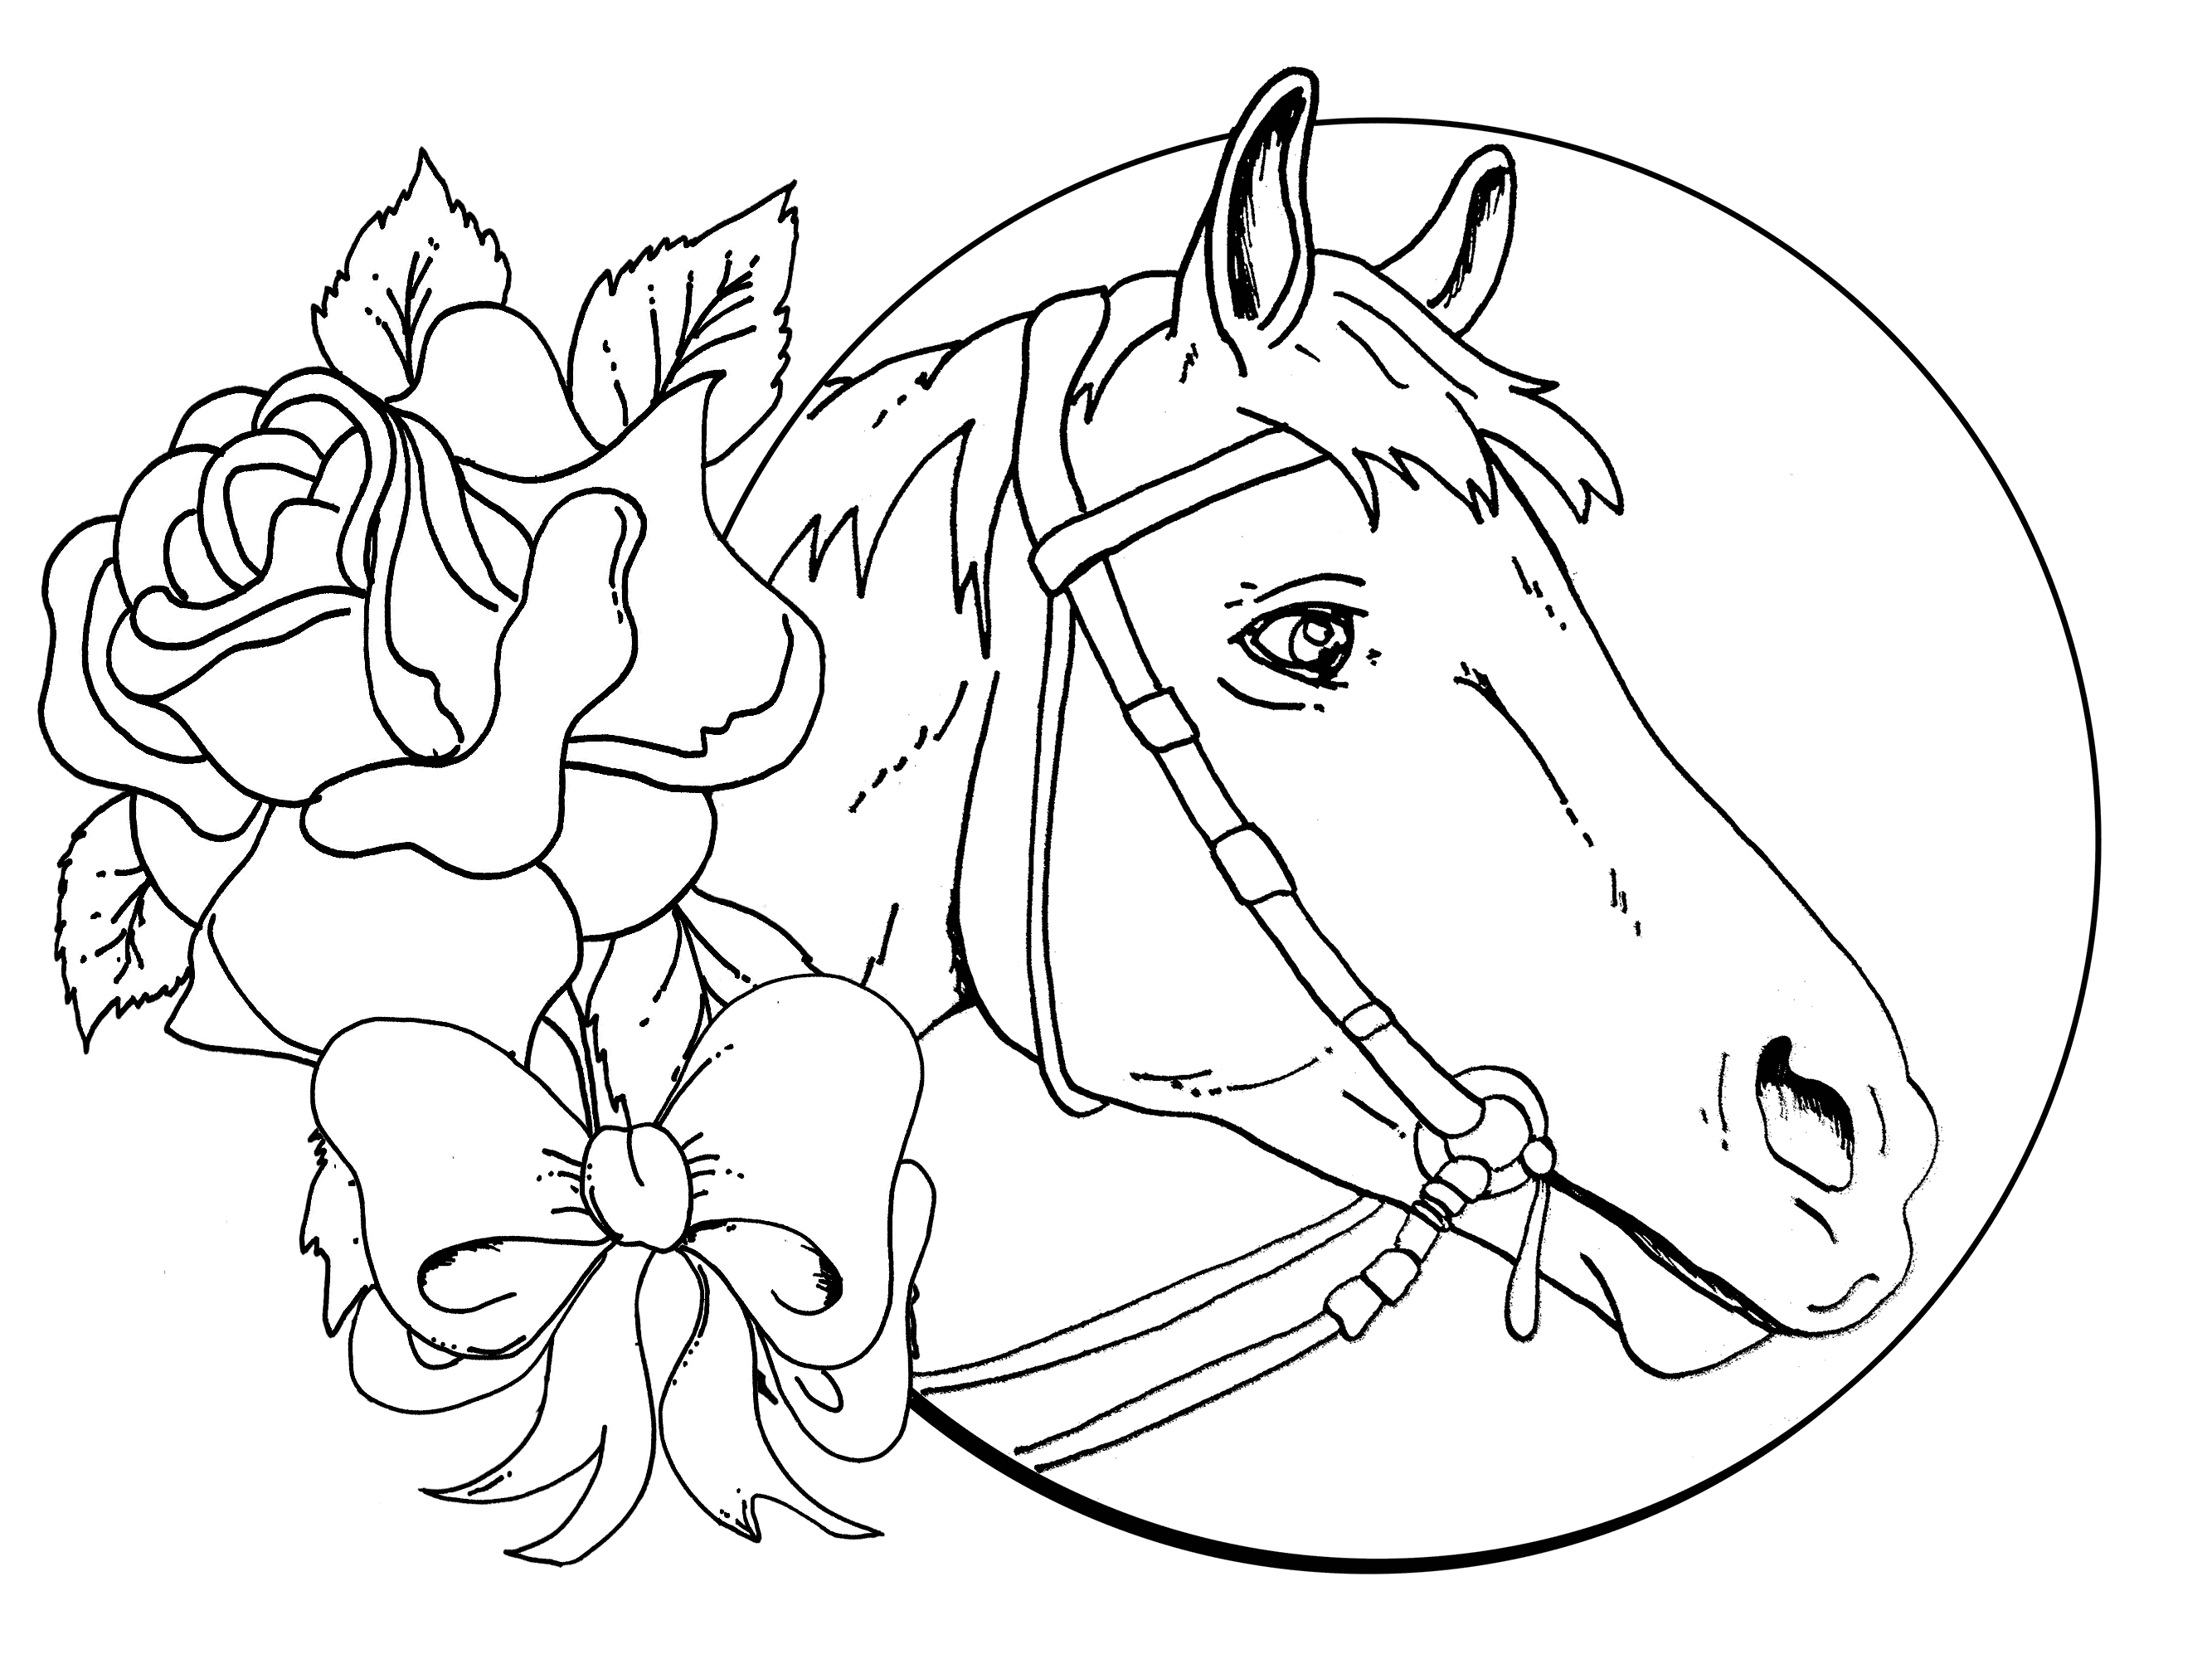 Coloring Pages for Teenage Girl Download – Free Coloring Sheets